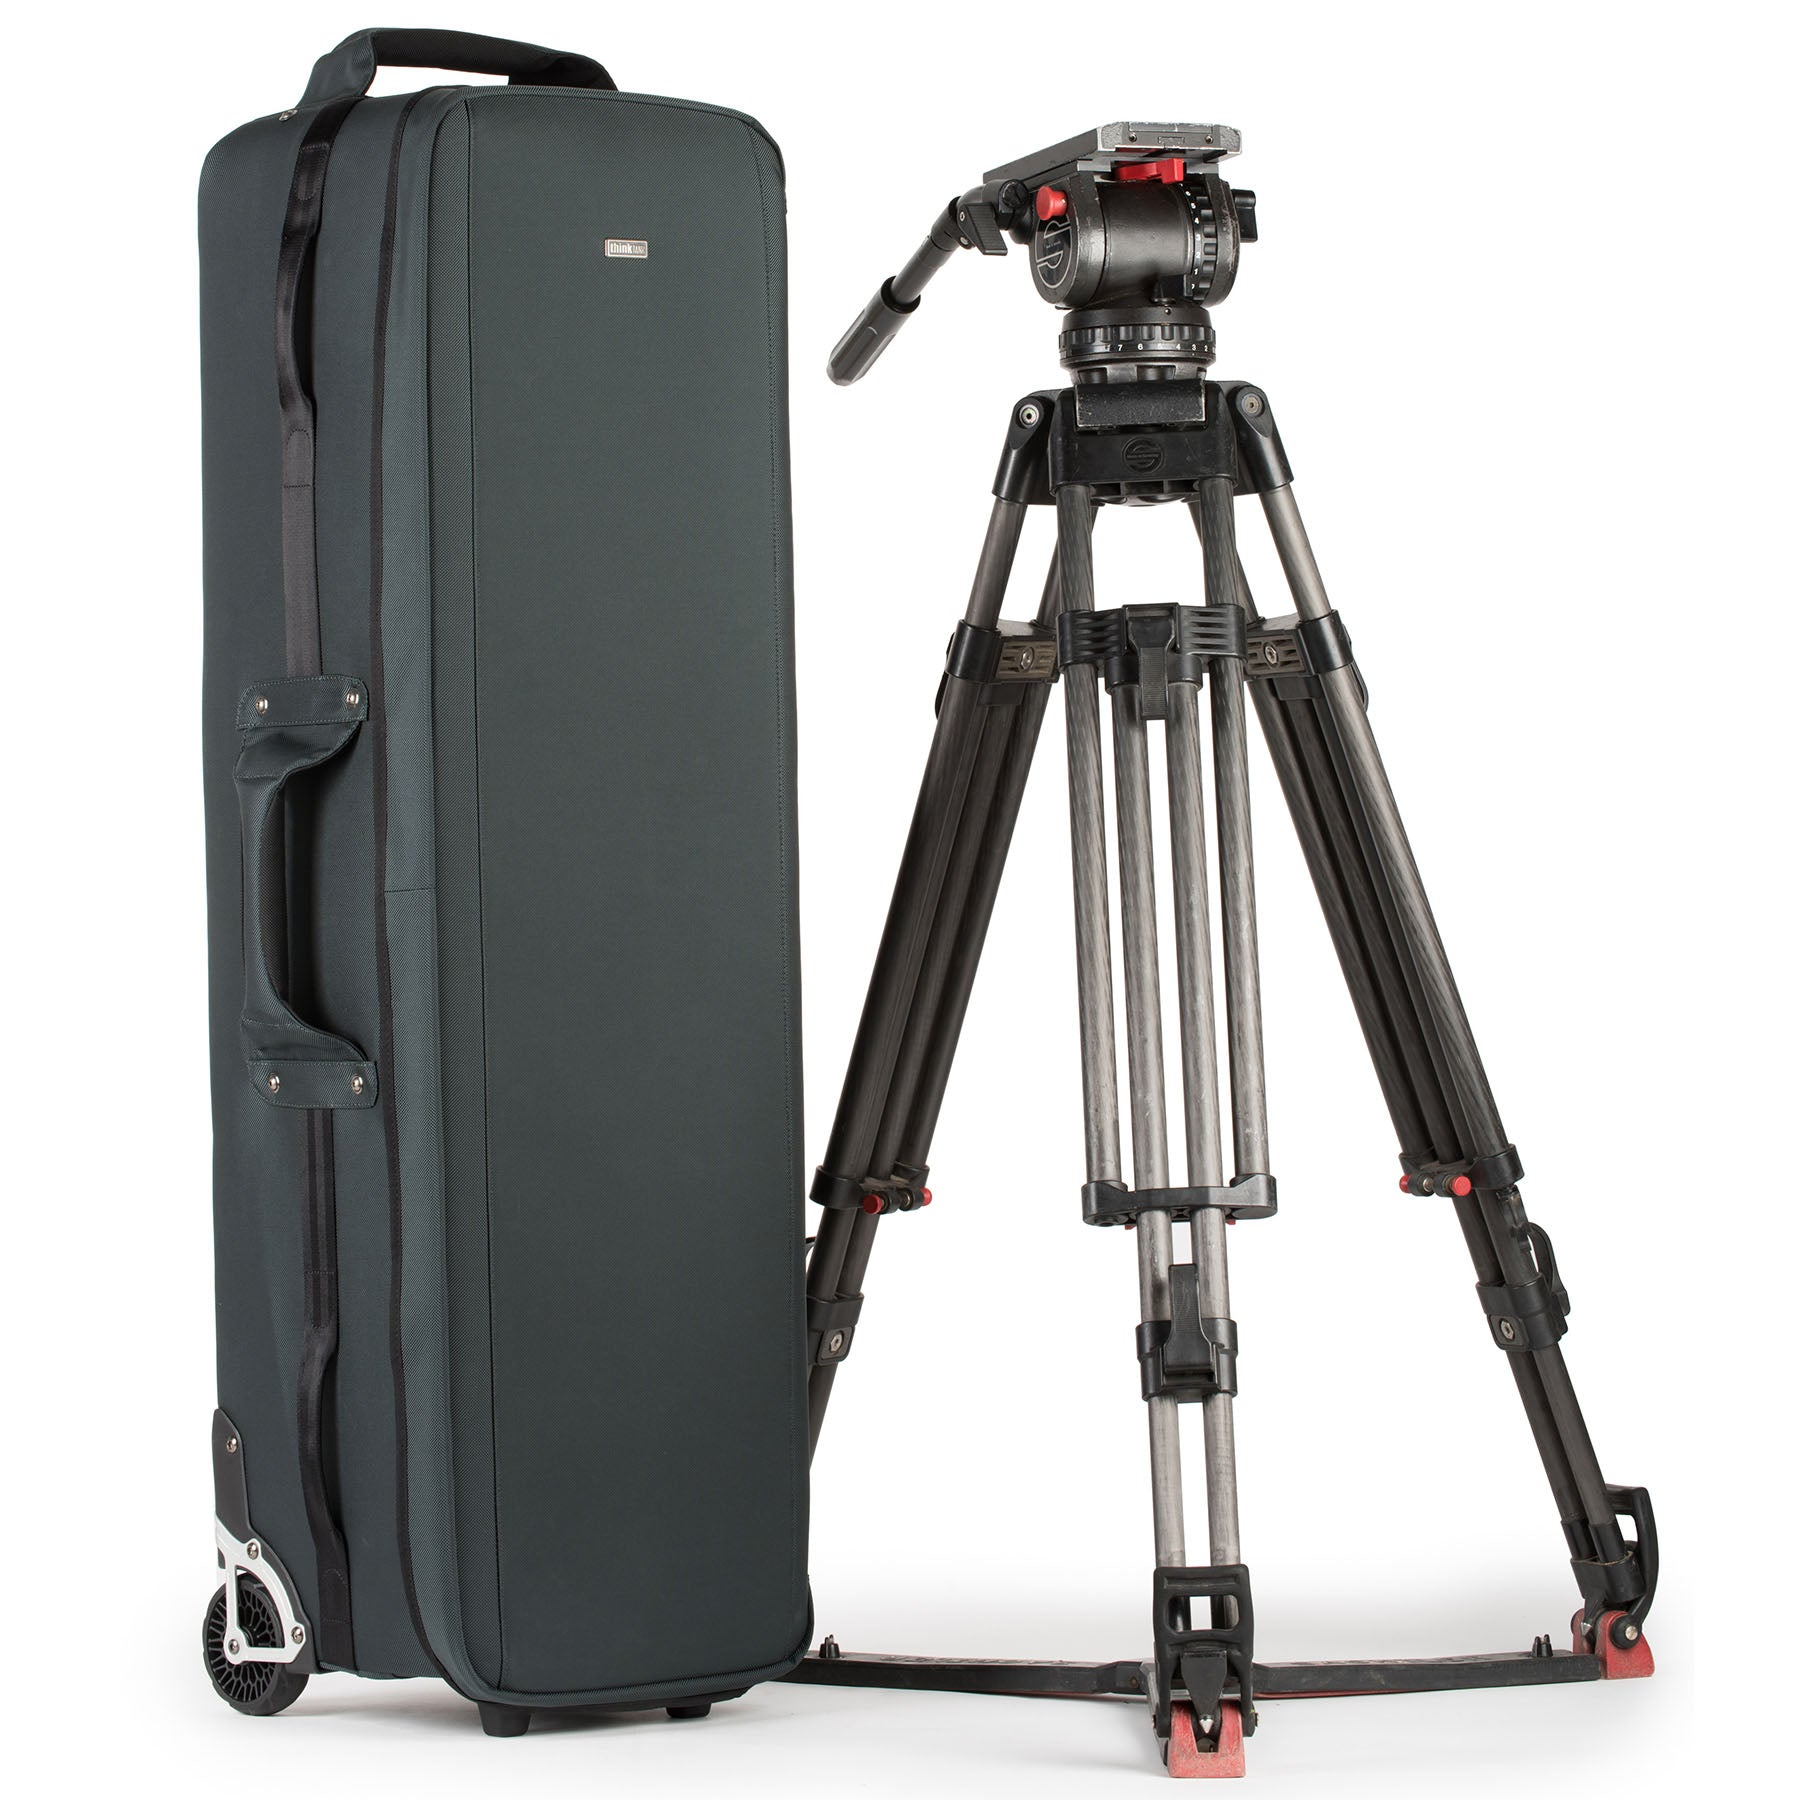 Holds cinema sized tripods, stands, sliders and/or modifiers up to 40""